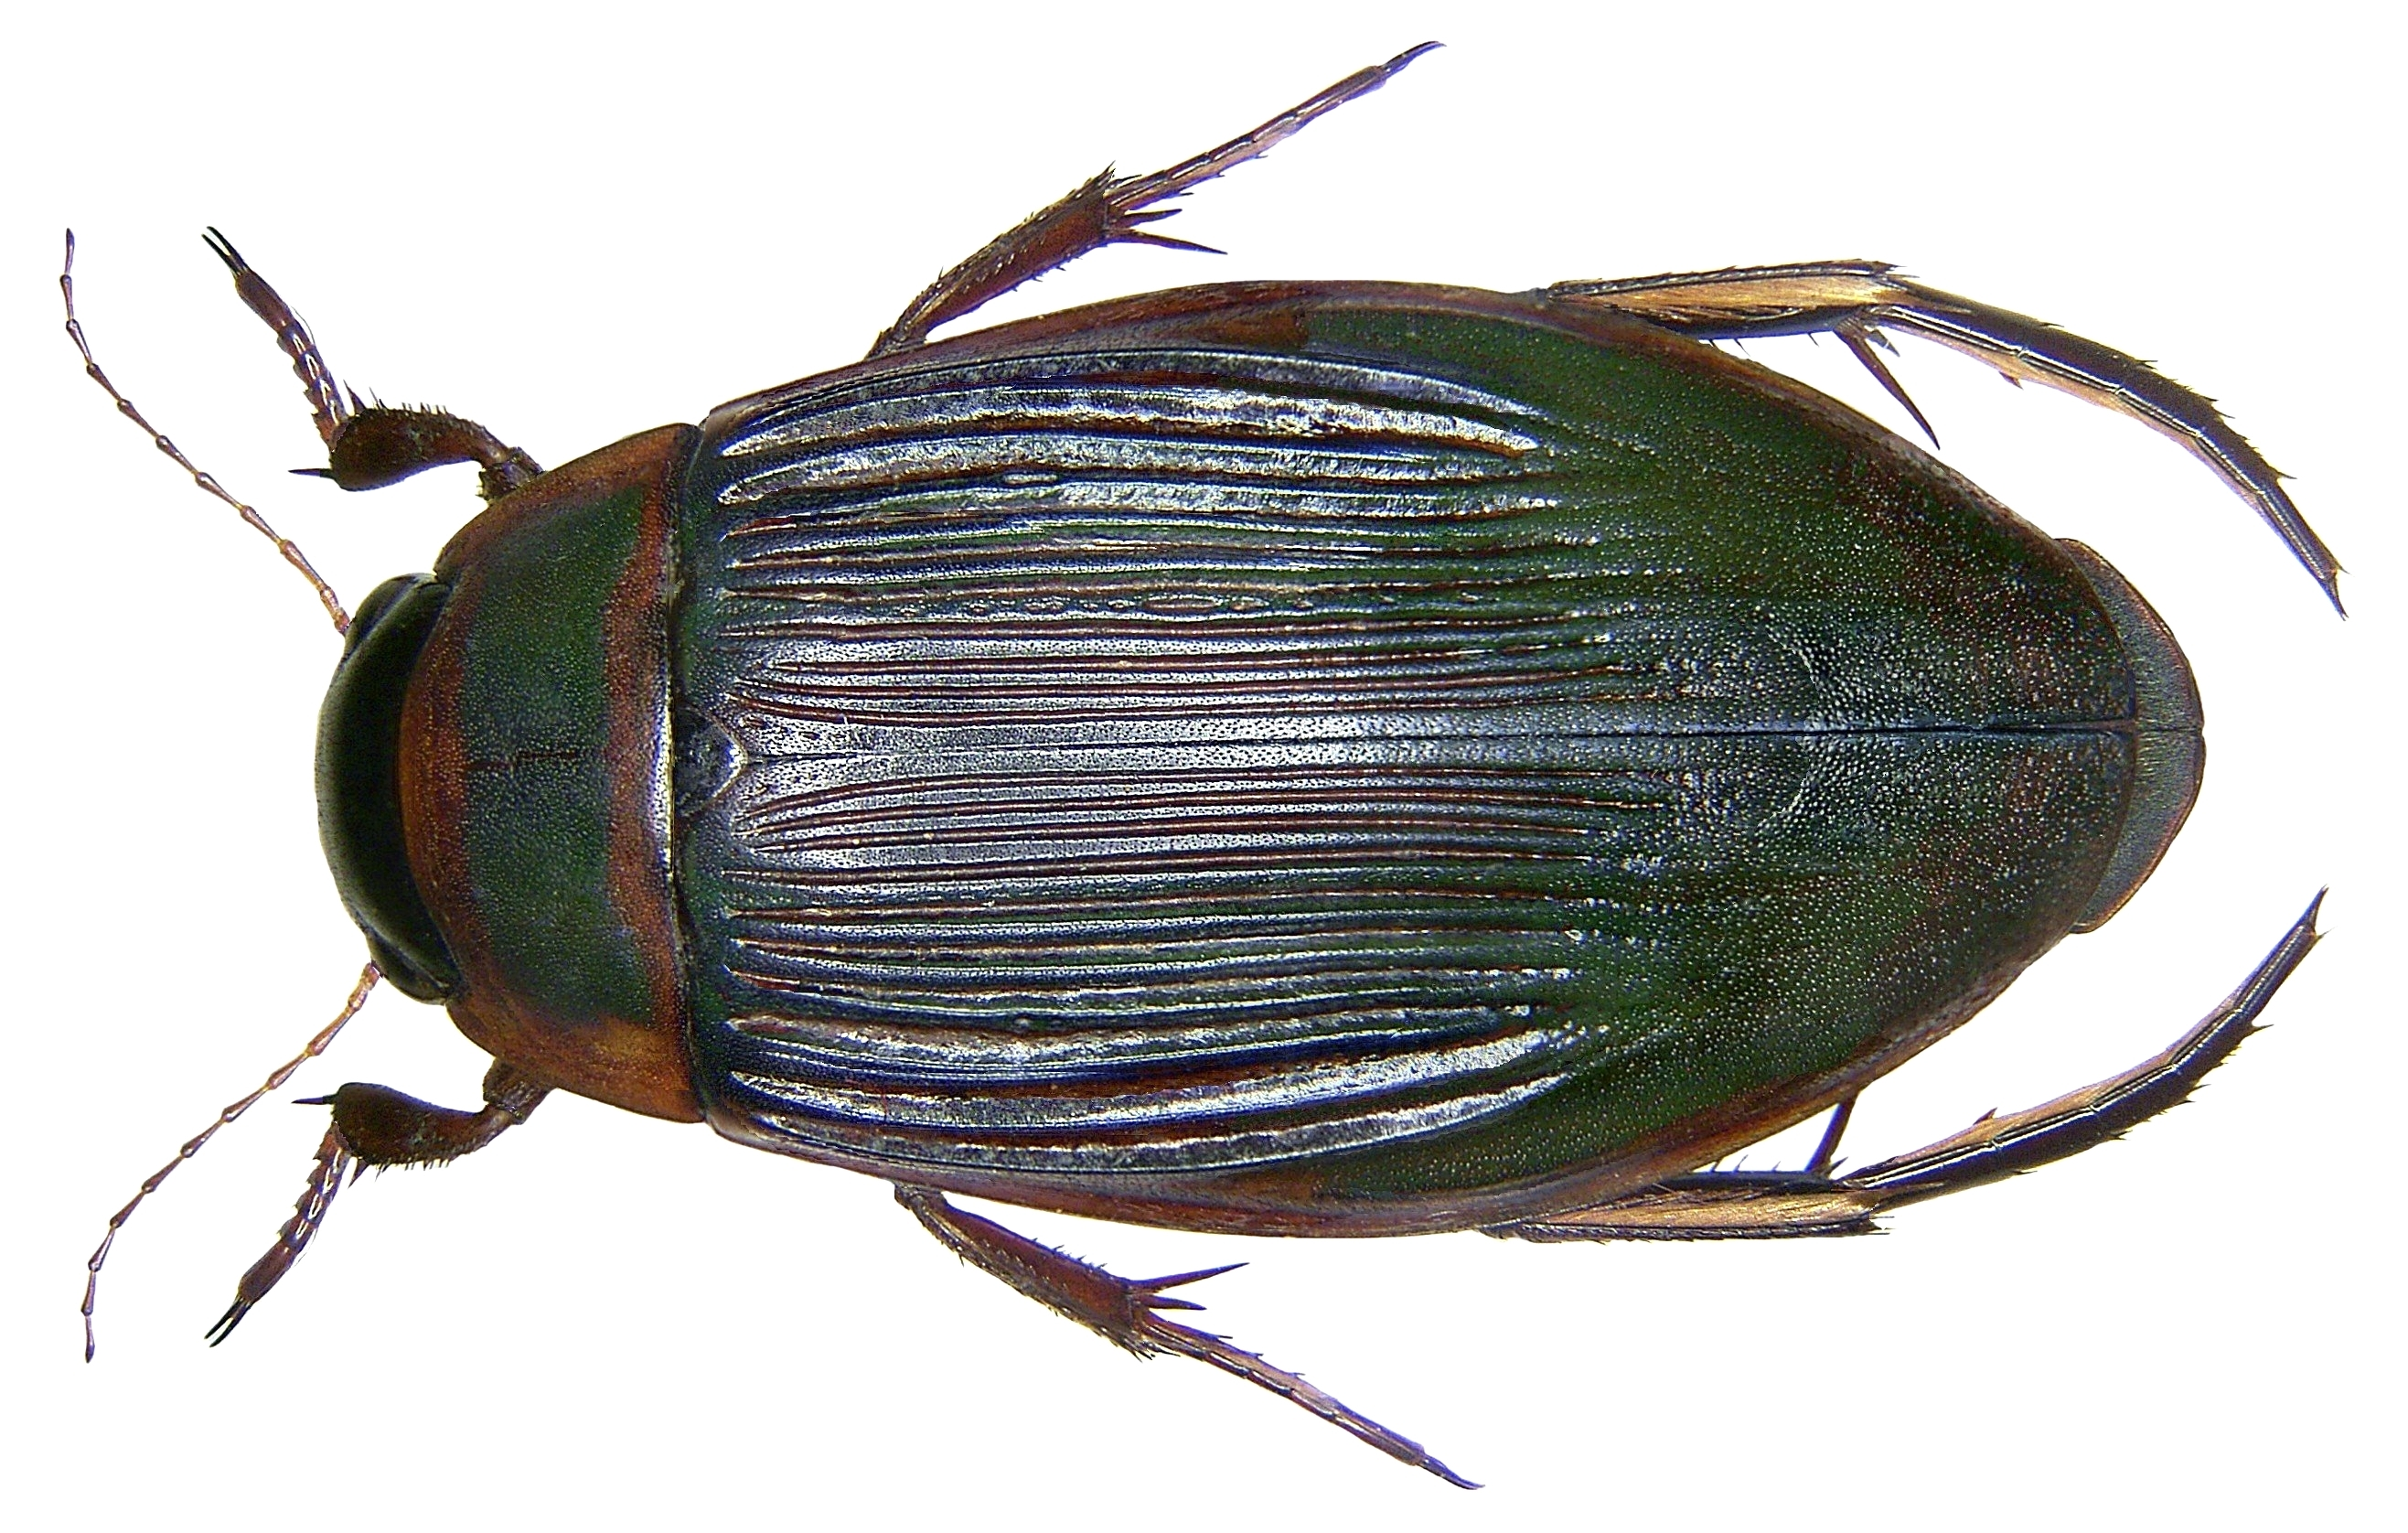 Image of Great diving beetle